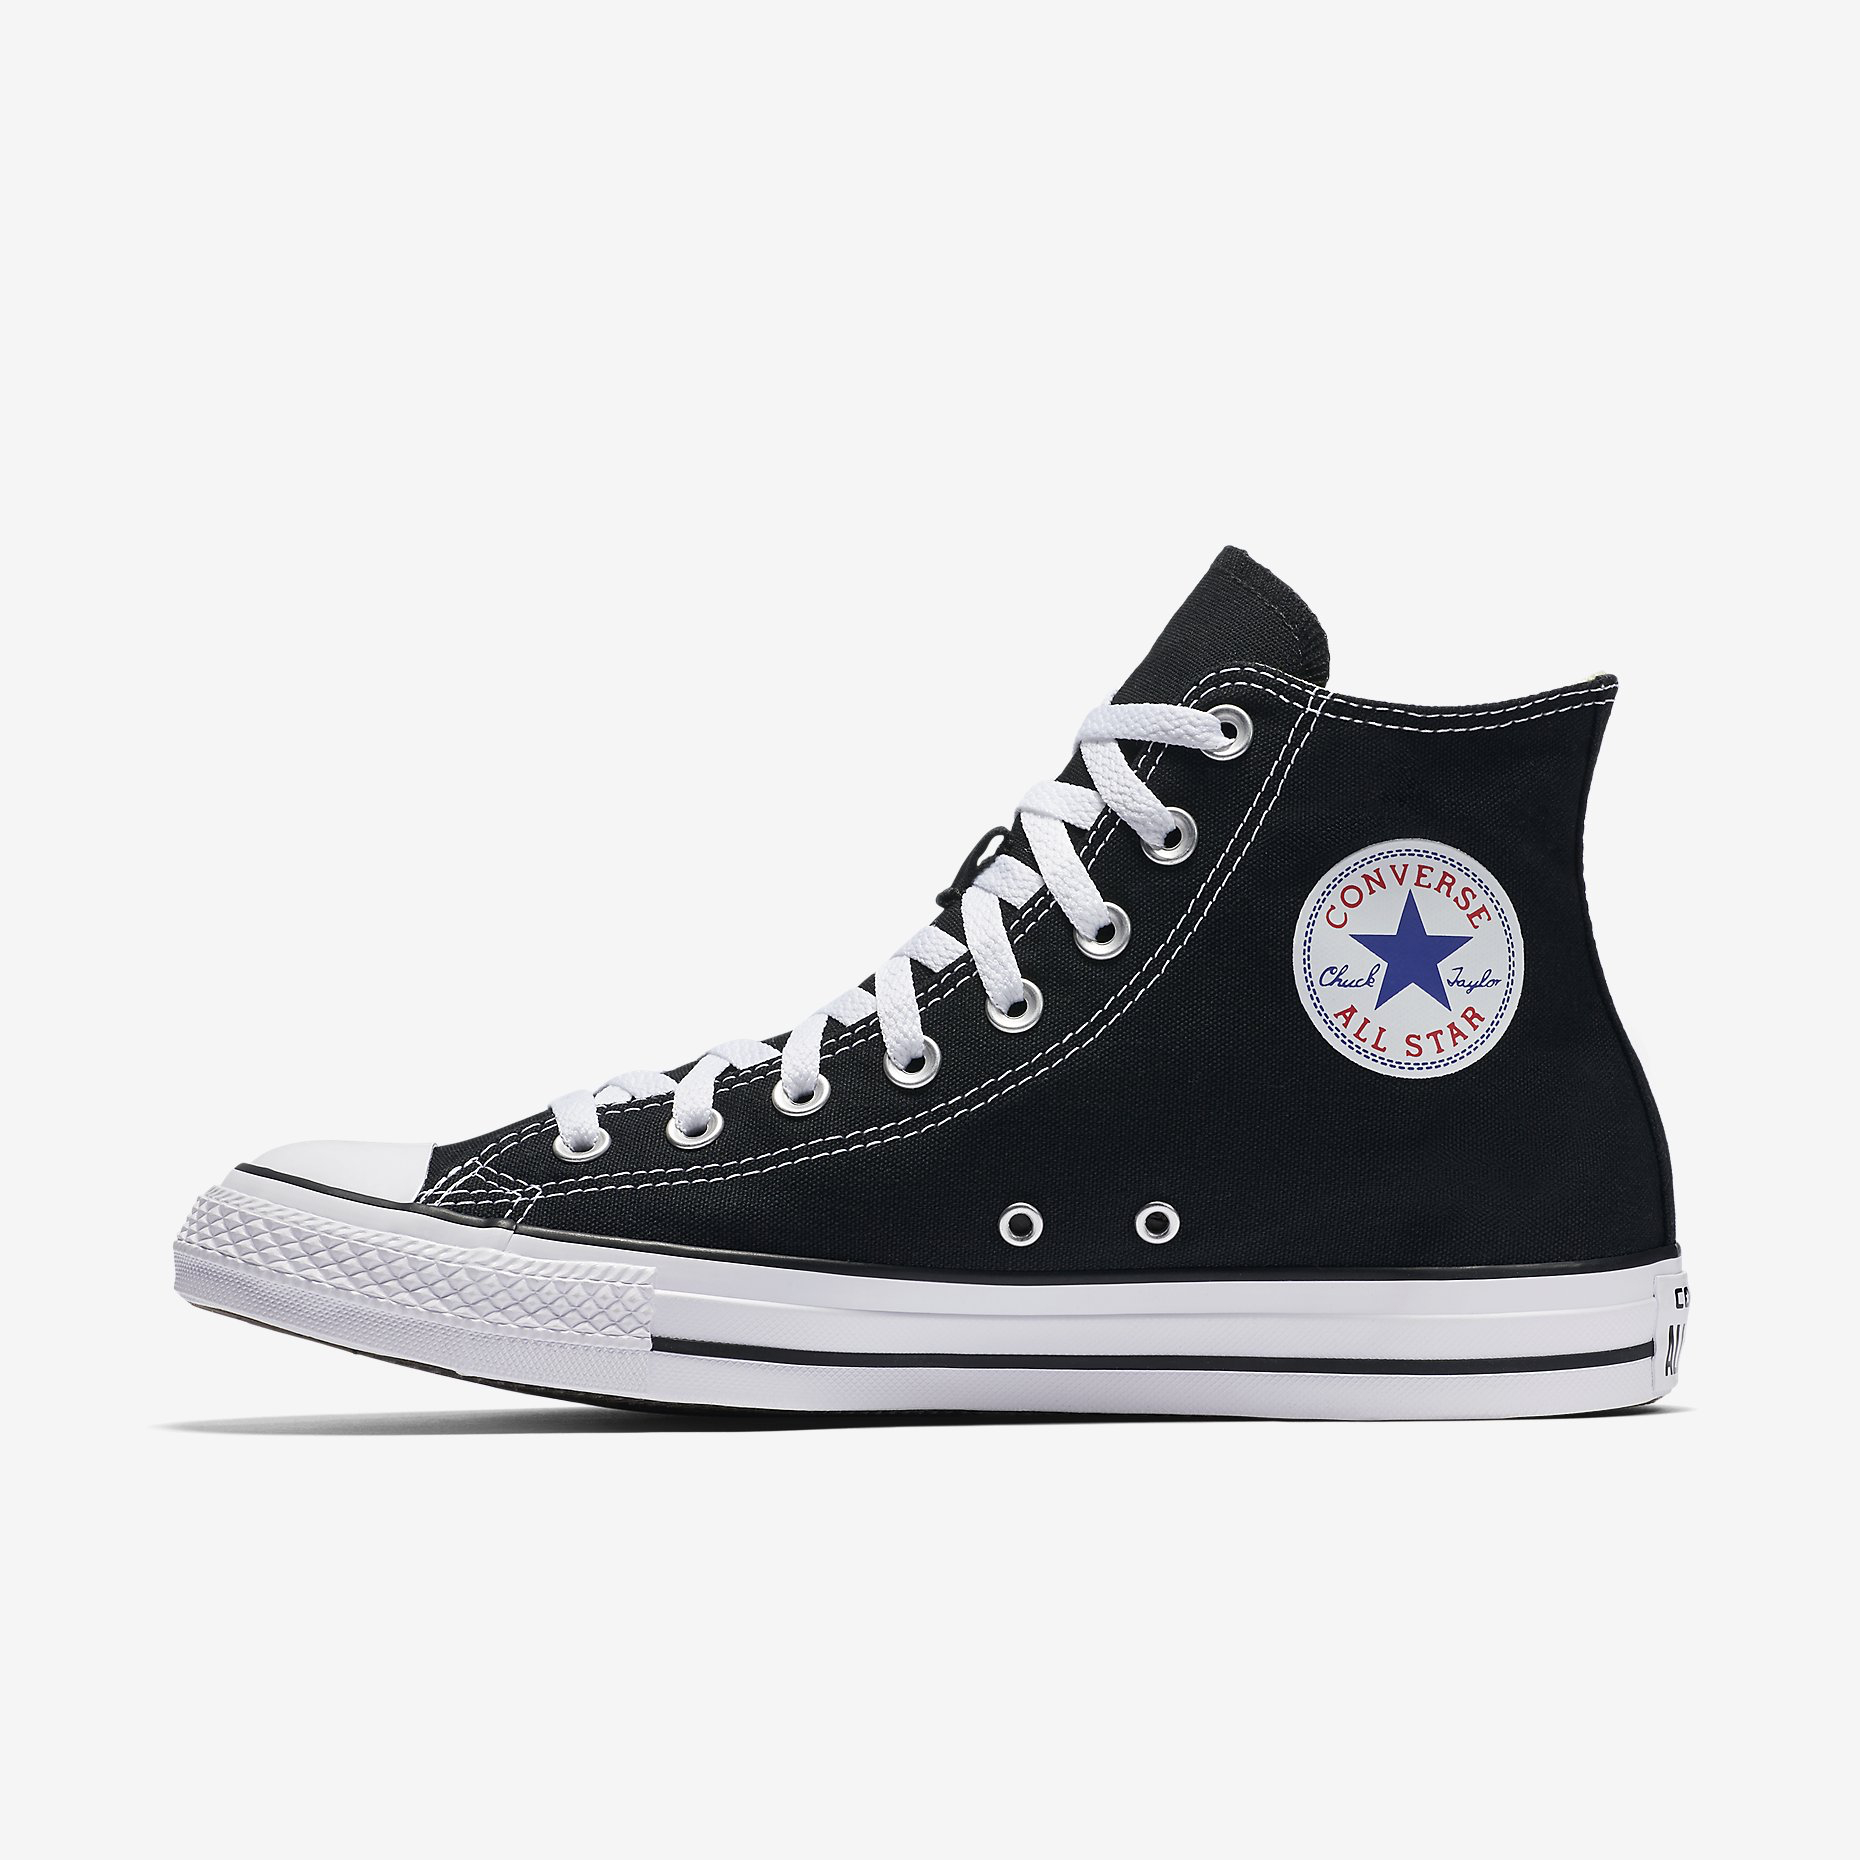 4d4fe82d7e1d73 Converse Chuck Taylor All Star Womens High Top Black in 2019